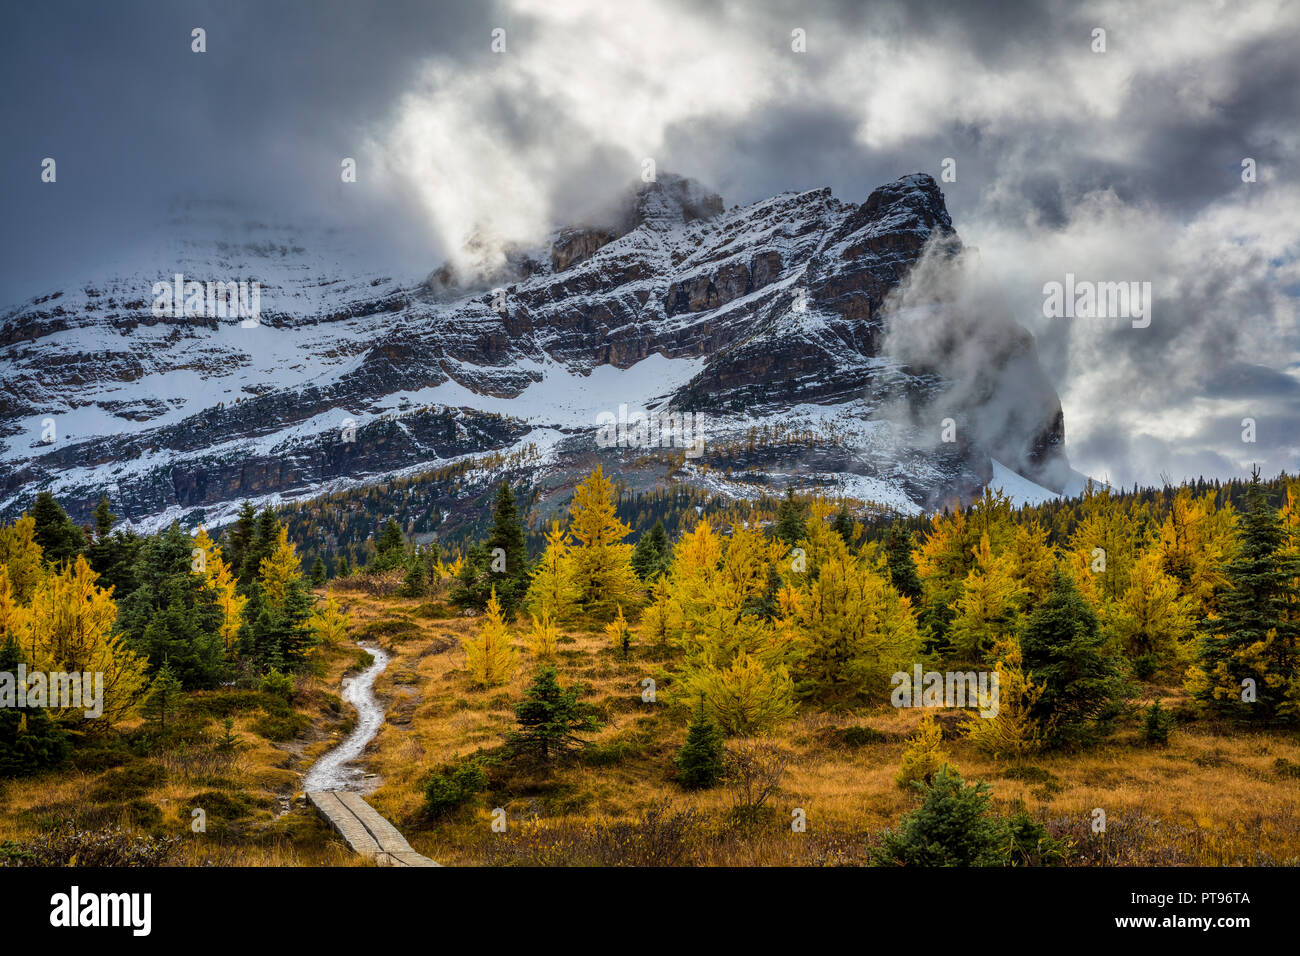 Mount Assiniboine Provincial Park is a provincial park in British Columbia, Canada, located around Mount Assiniboine. - Stock Image